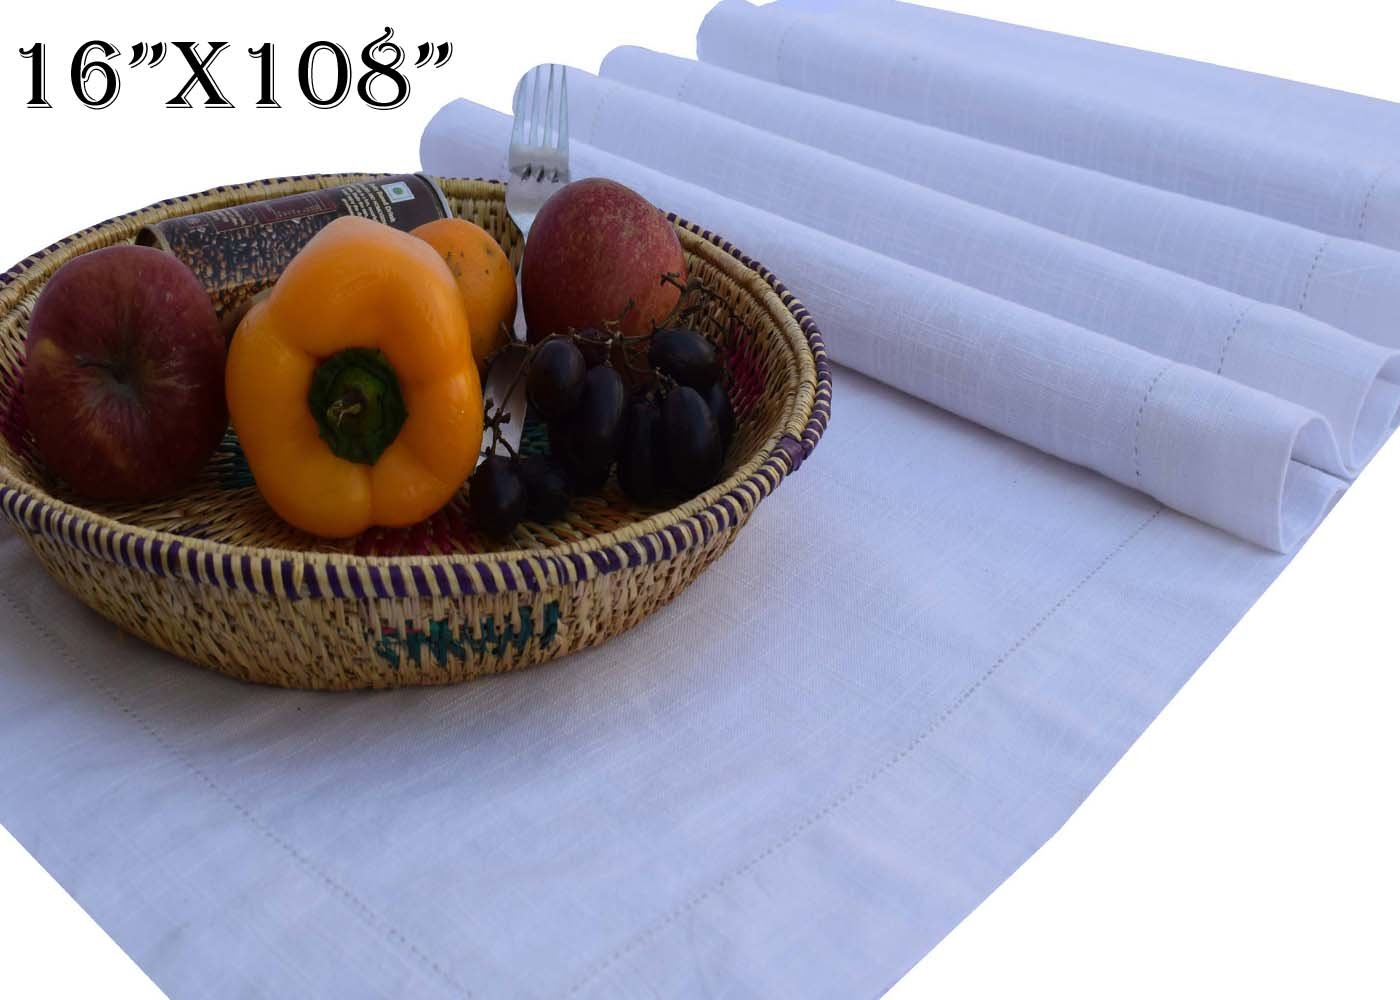 Linen Clubs - Slub Cotton Table Runner - White - 16x108 - 100% Egyptian Slub Cotton with Linen Look - Elegant Cloth - Super Value Hand made Ladder Lace Look & One of life's little home luxuries